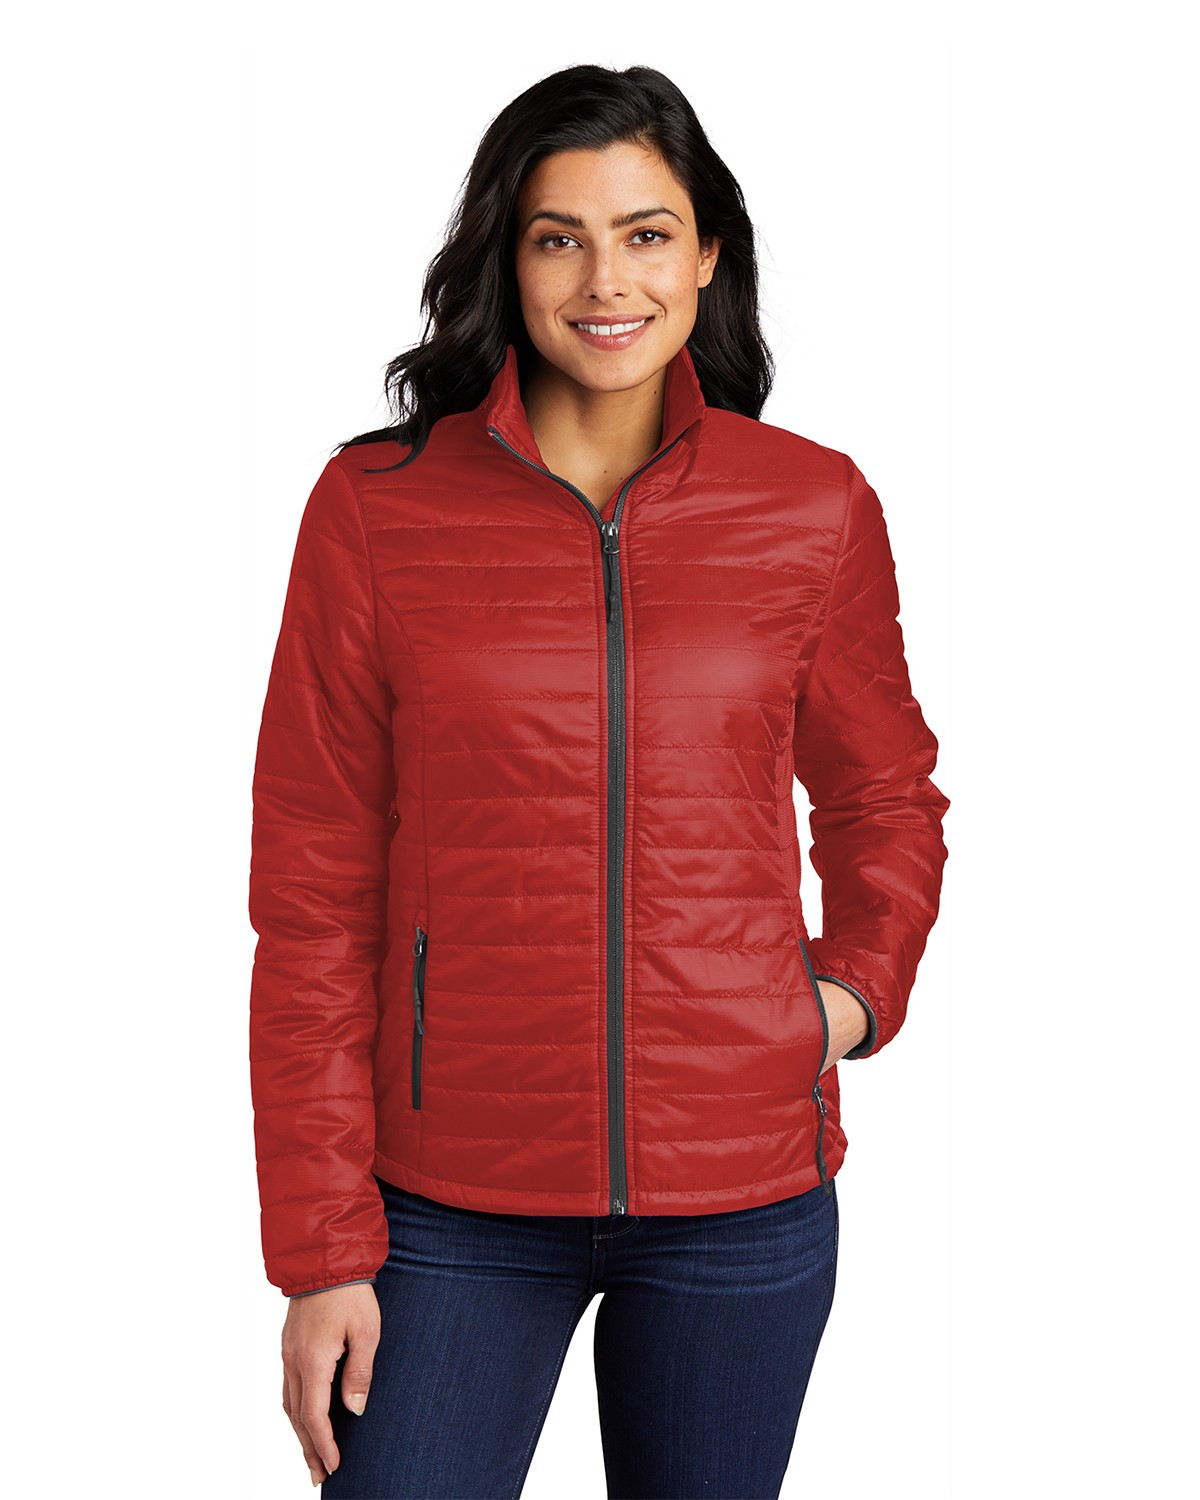 Port Authority L850 Women's Packable Puffy Jacket - Fire Red/ Graphite - XS from Port Authority